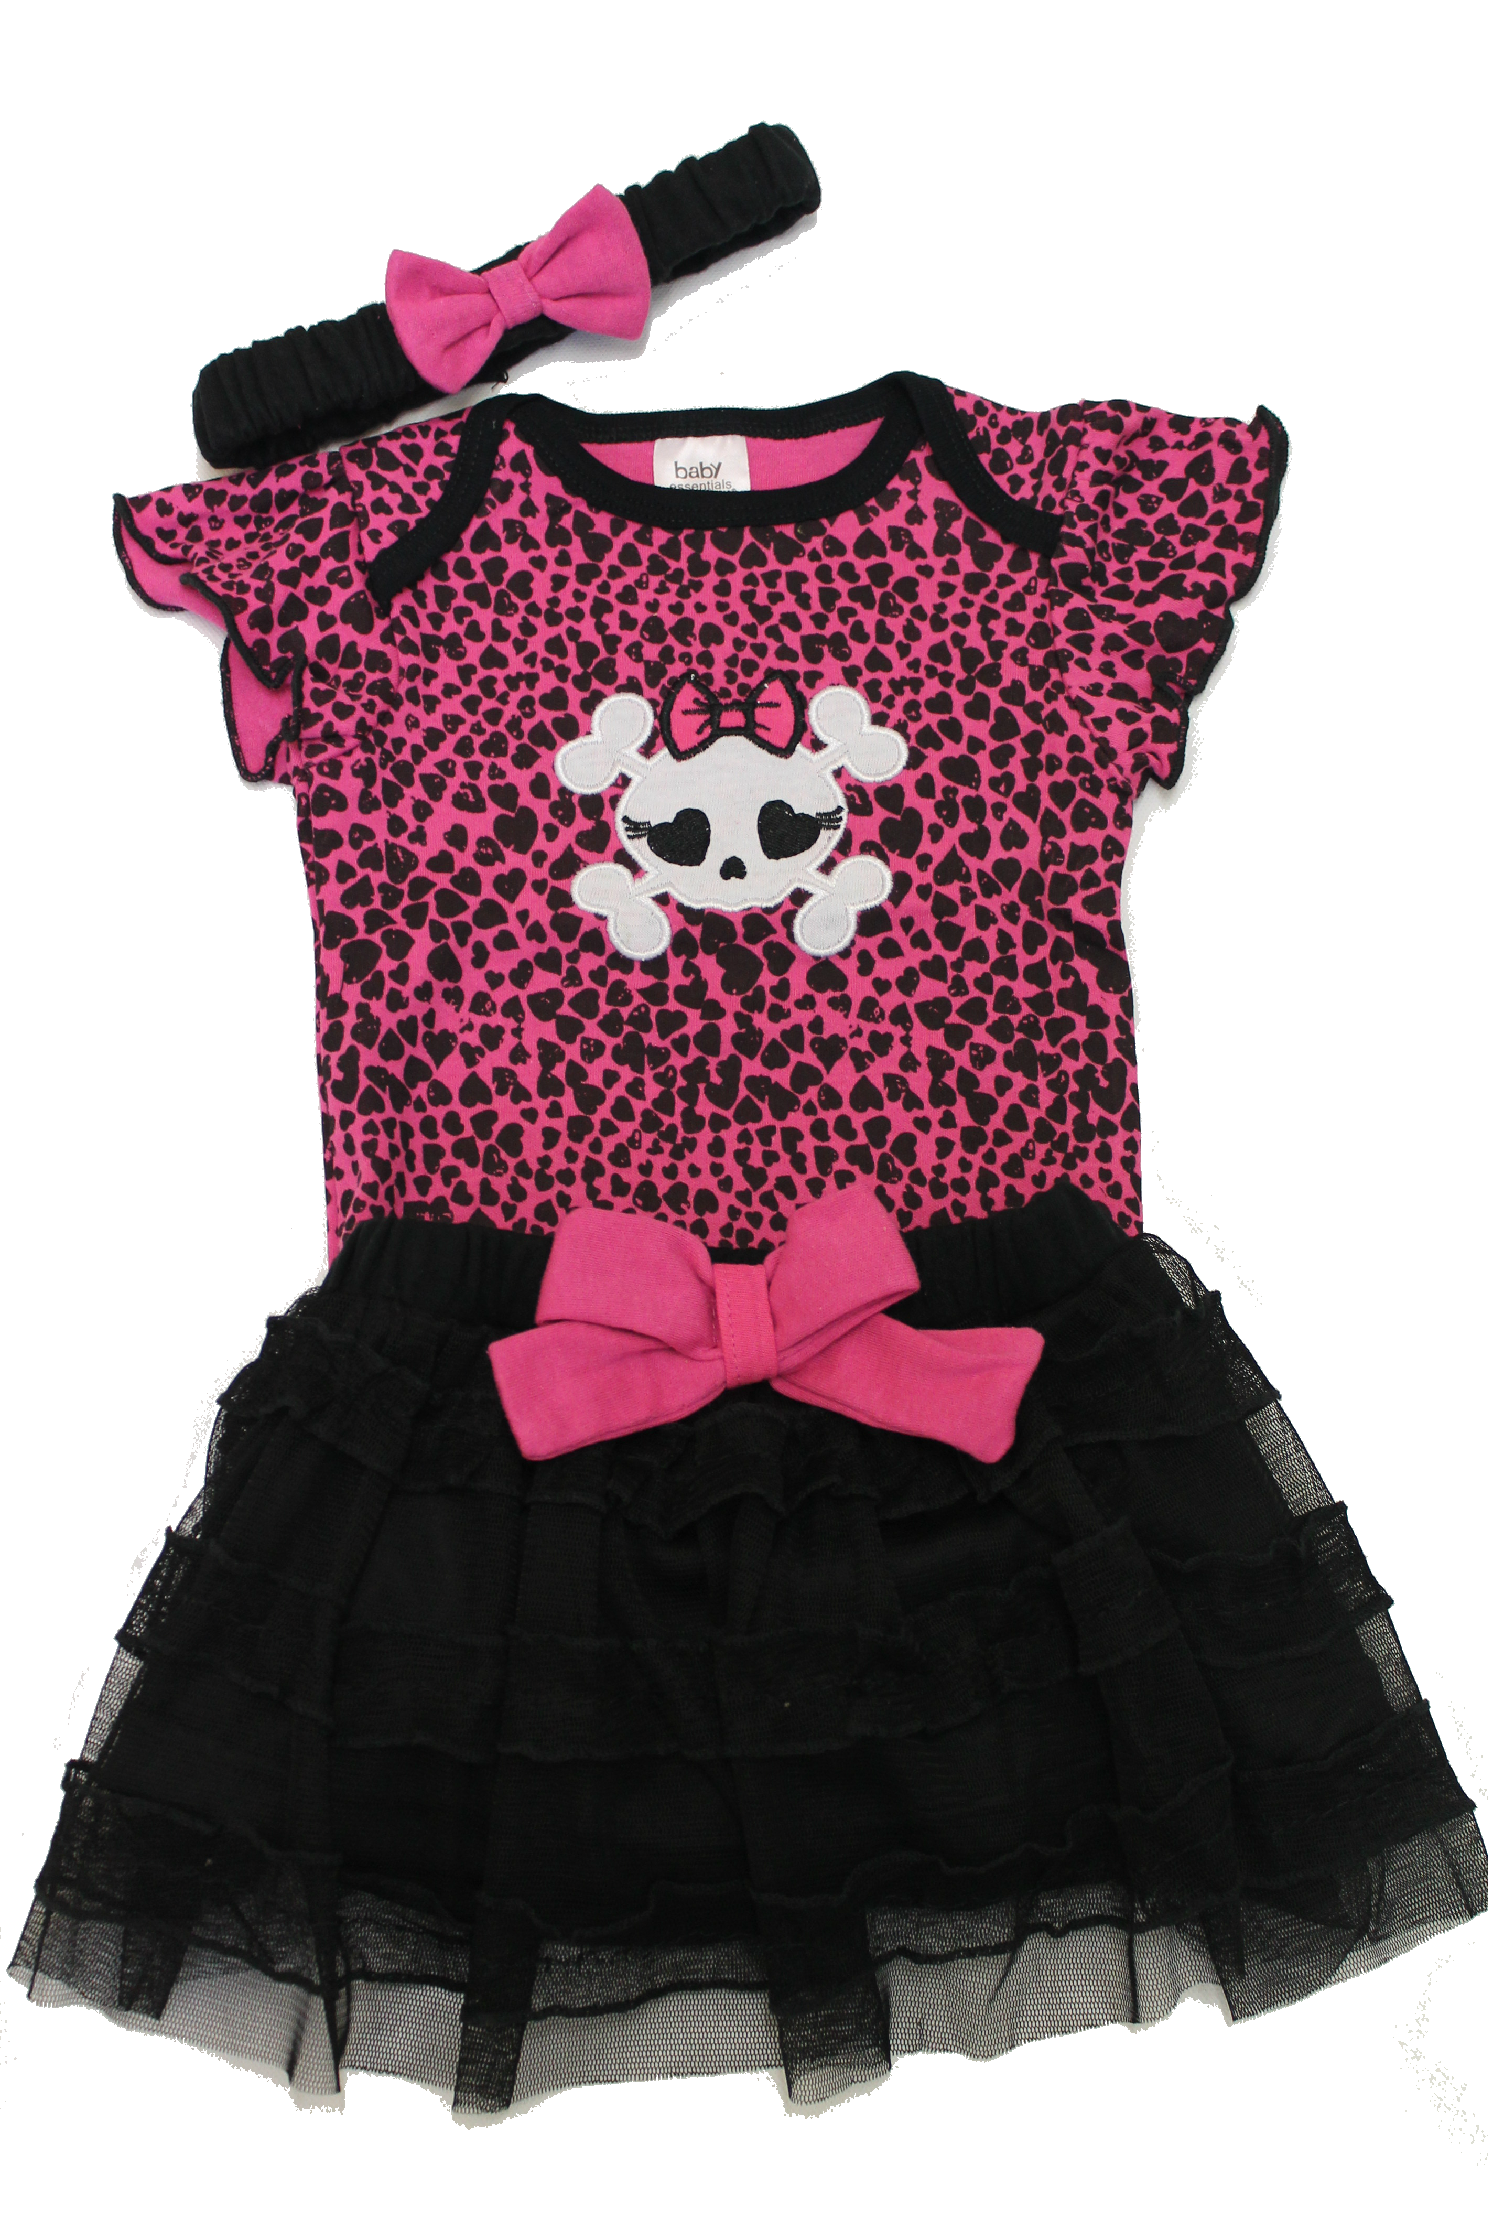 3 Piece Girls Punk Baby Outfit   Punk baby clothes, Punk ...